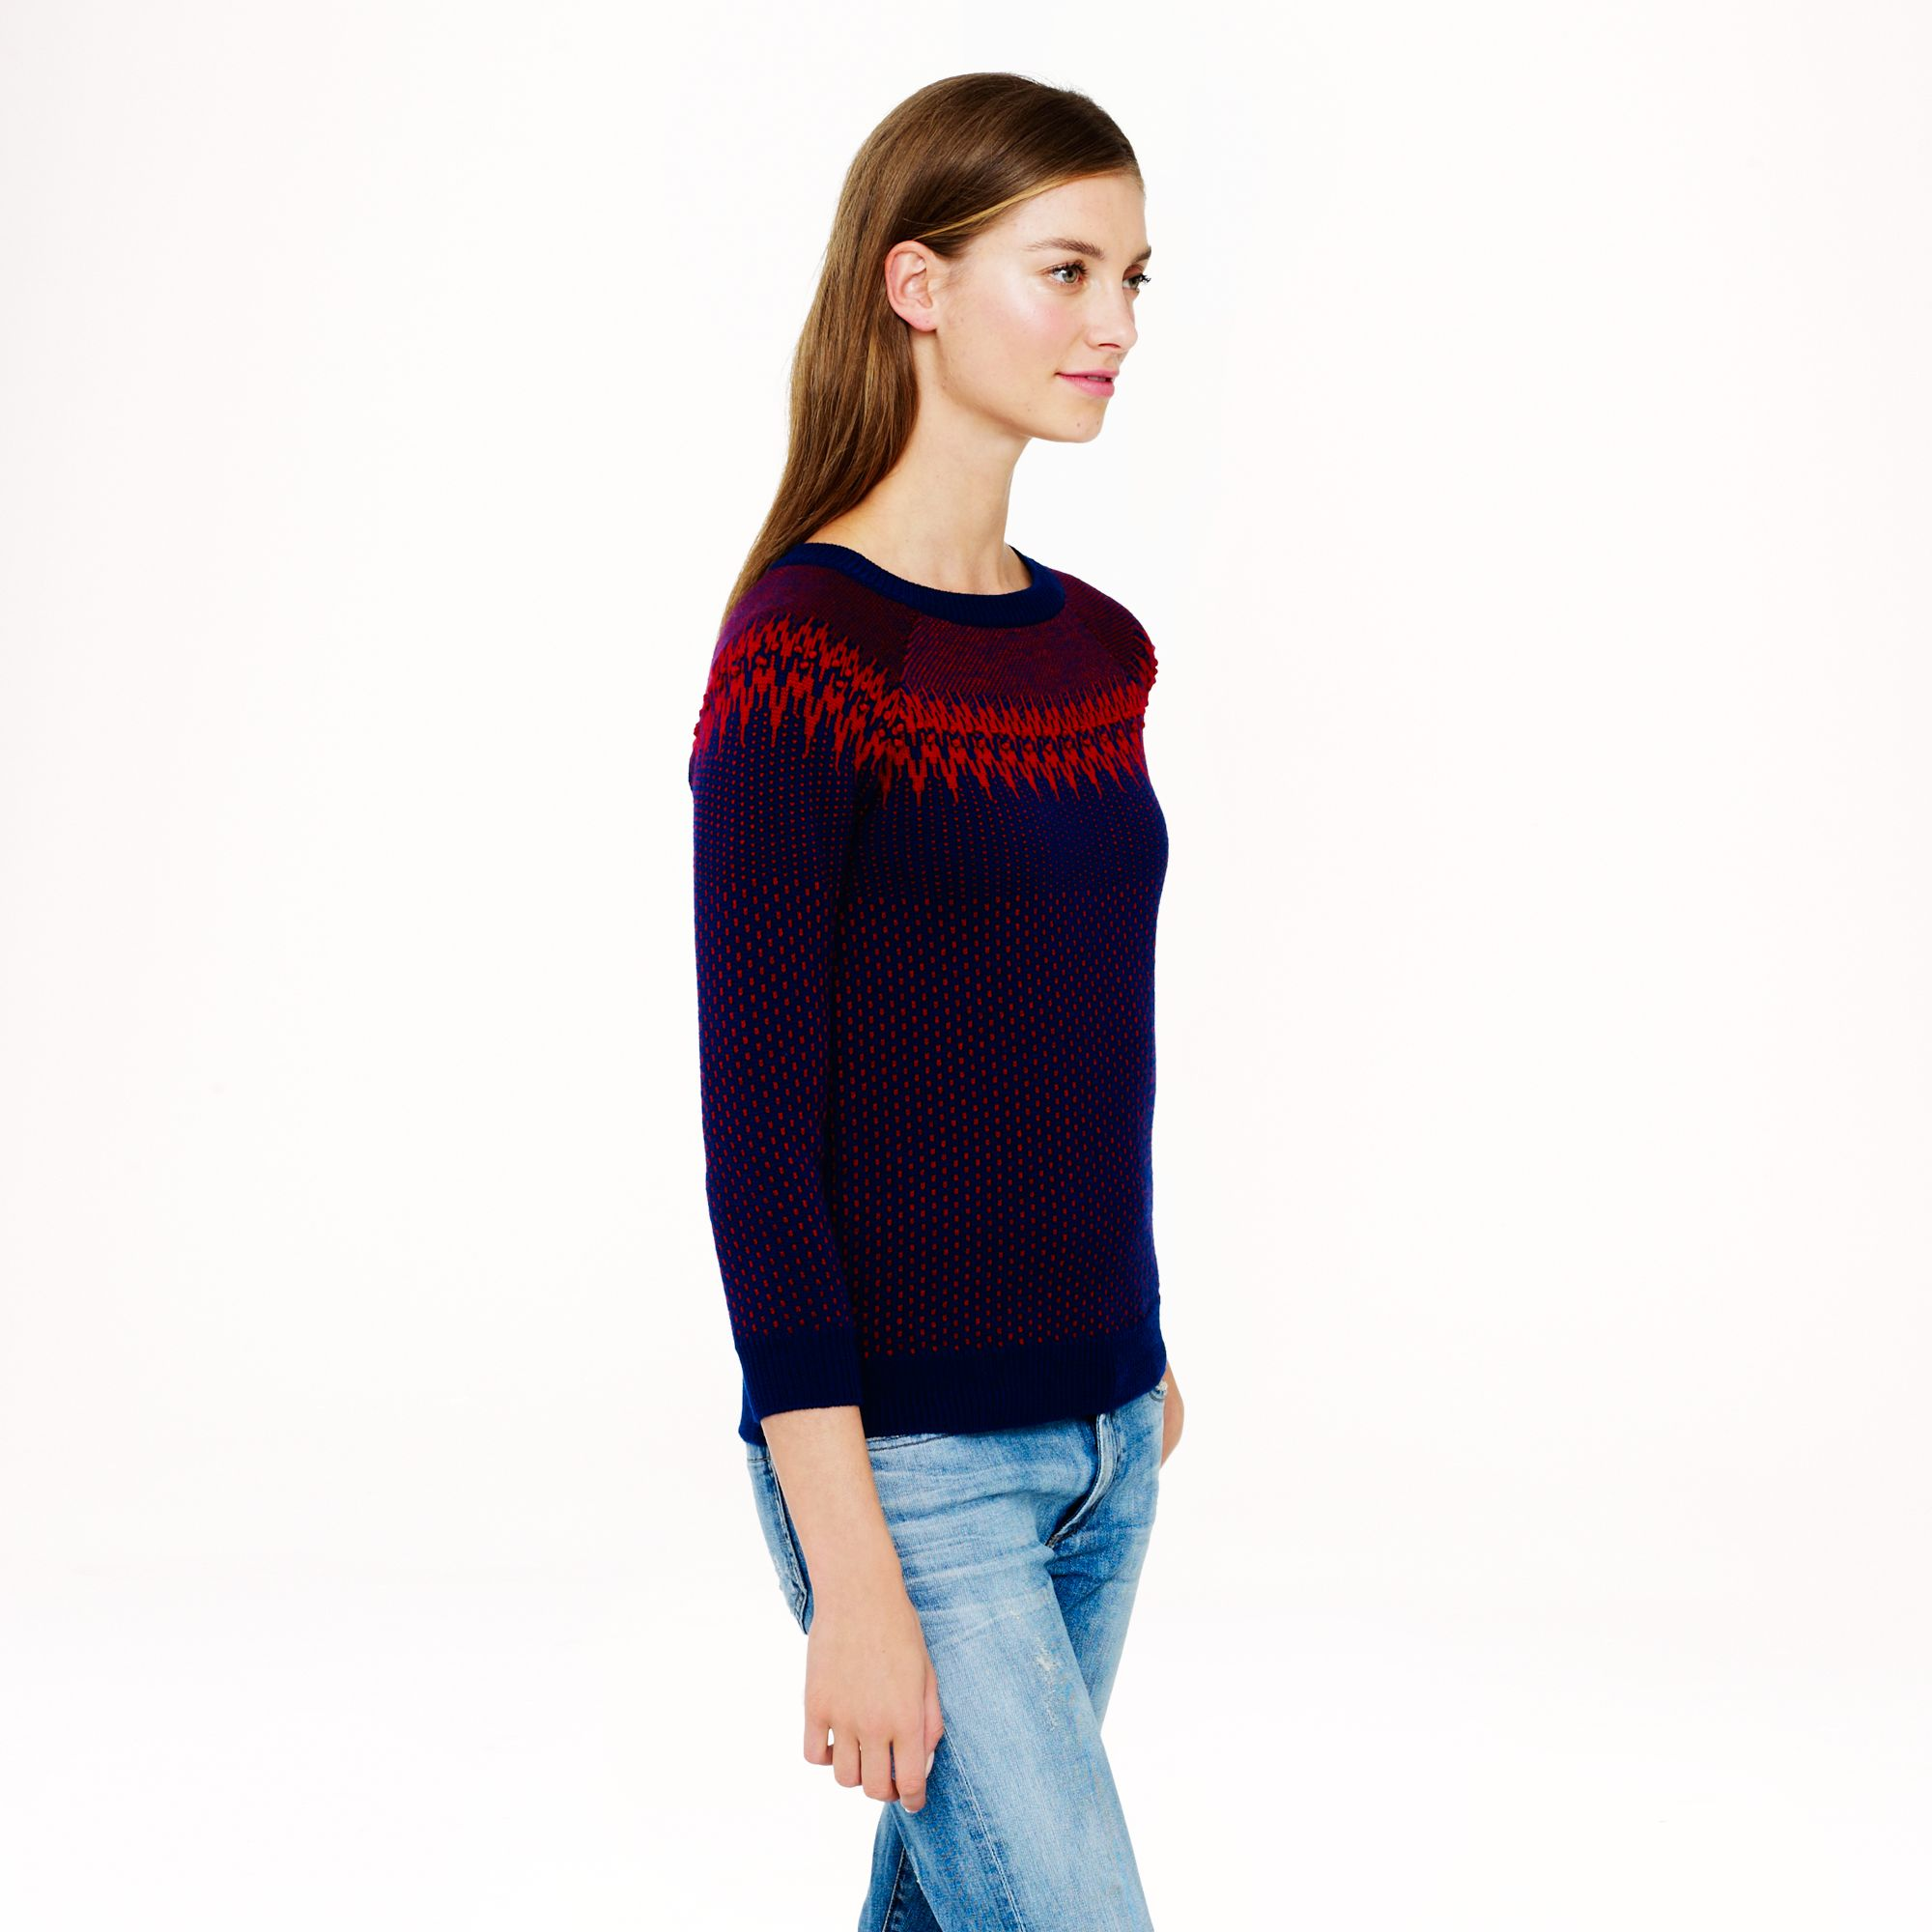 J.crew Merino Fair Isle Sweater in Black | Lyst